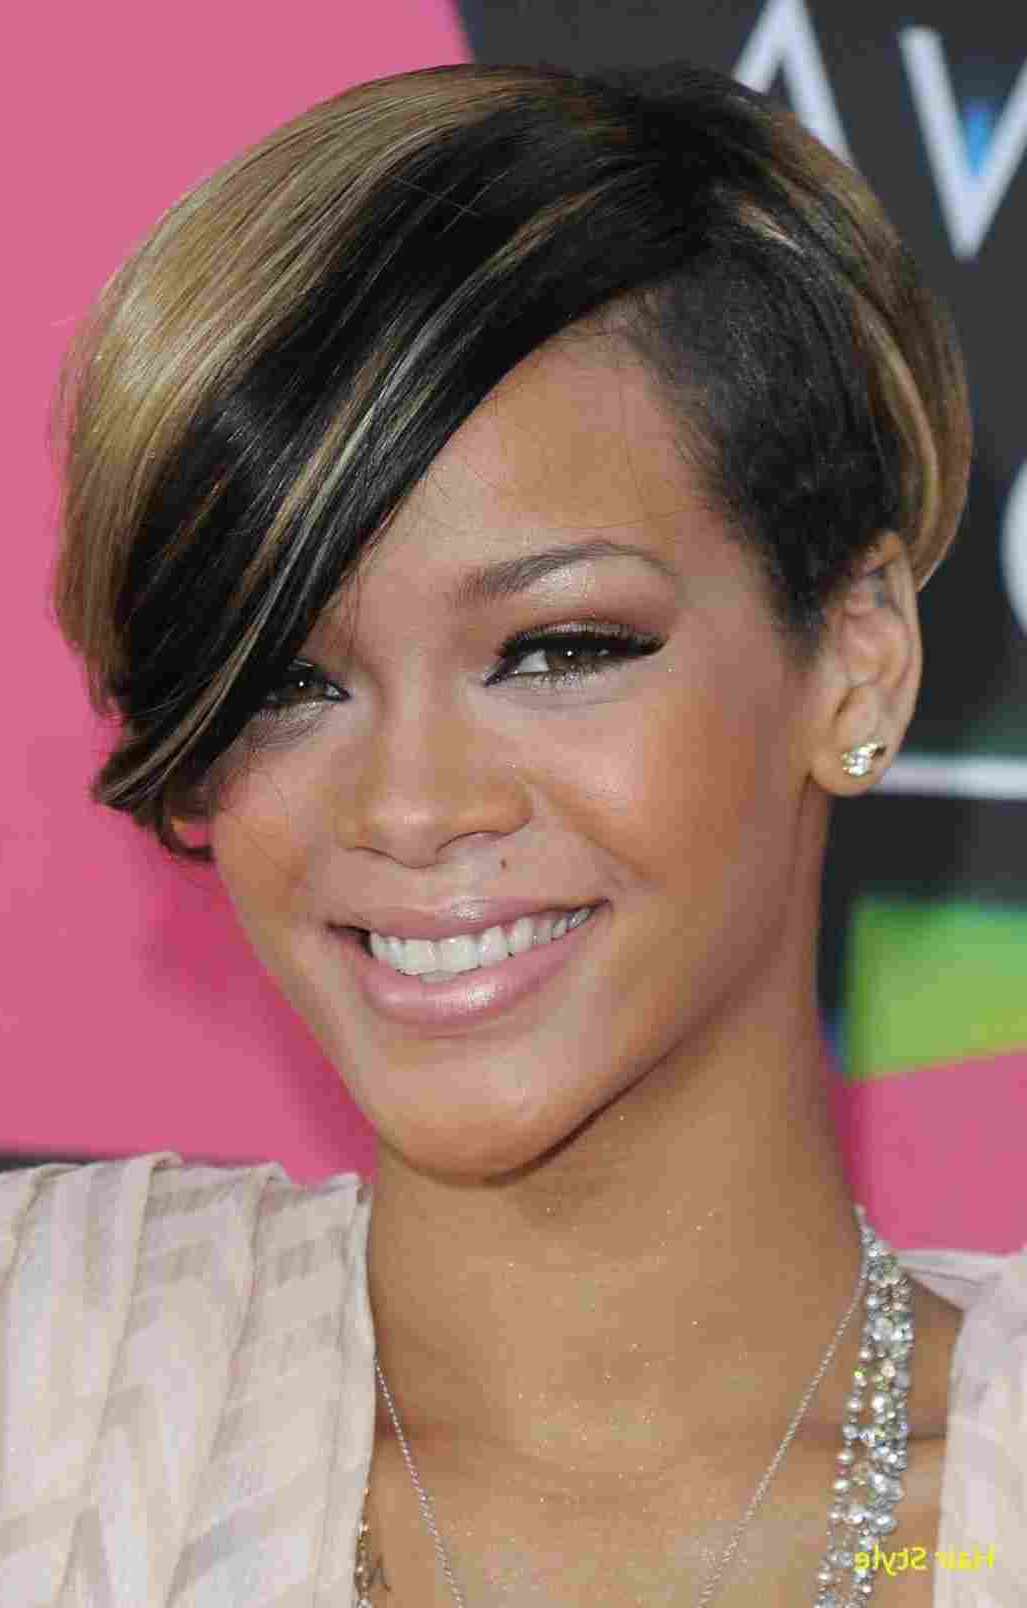 Youtuberhyoutubecom Beautiful Short Haircuts For Thin Hair And Oval Intended For Short Hairstyles For Fine Hair Oval Face (View 22 of 25)